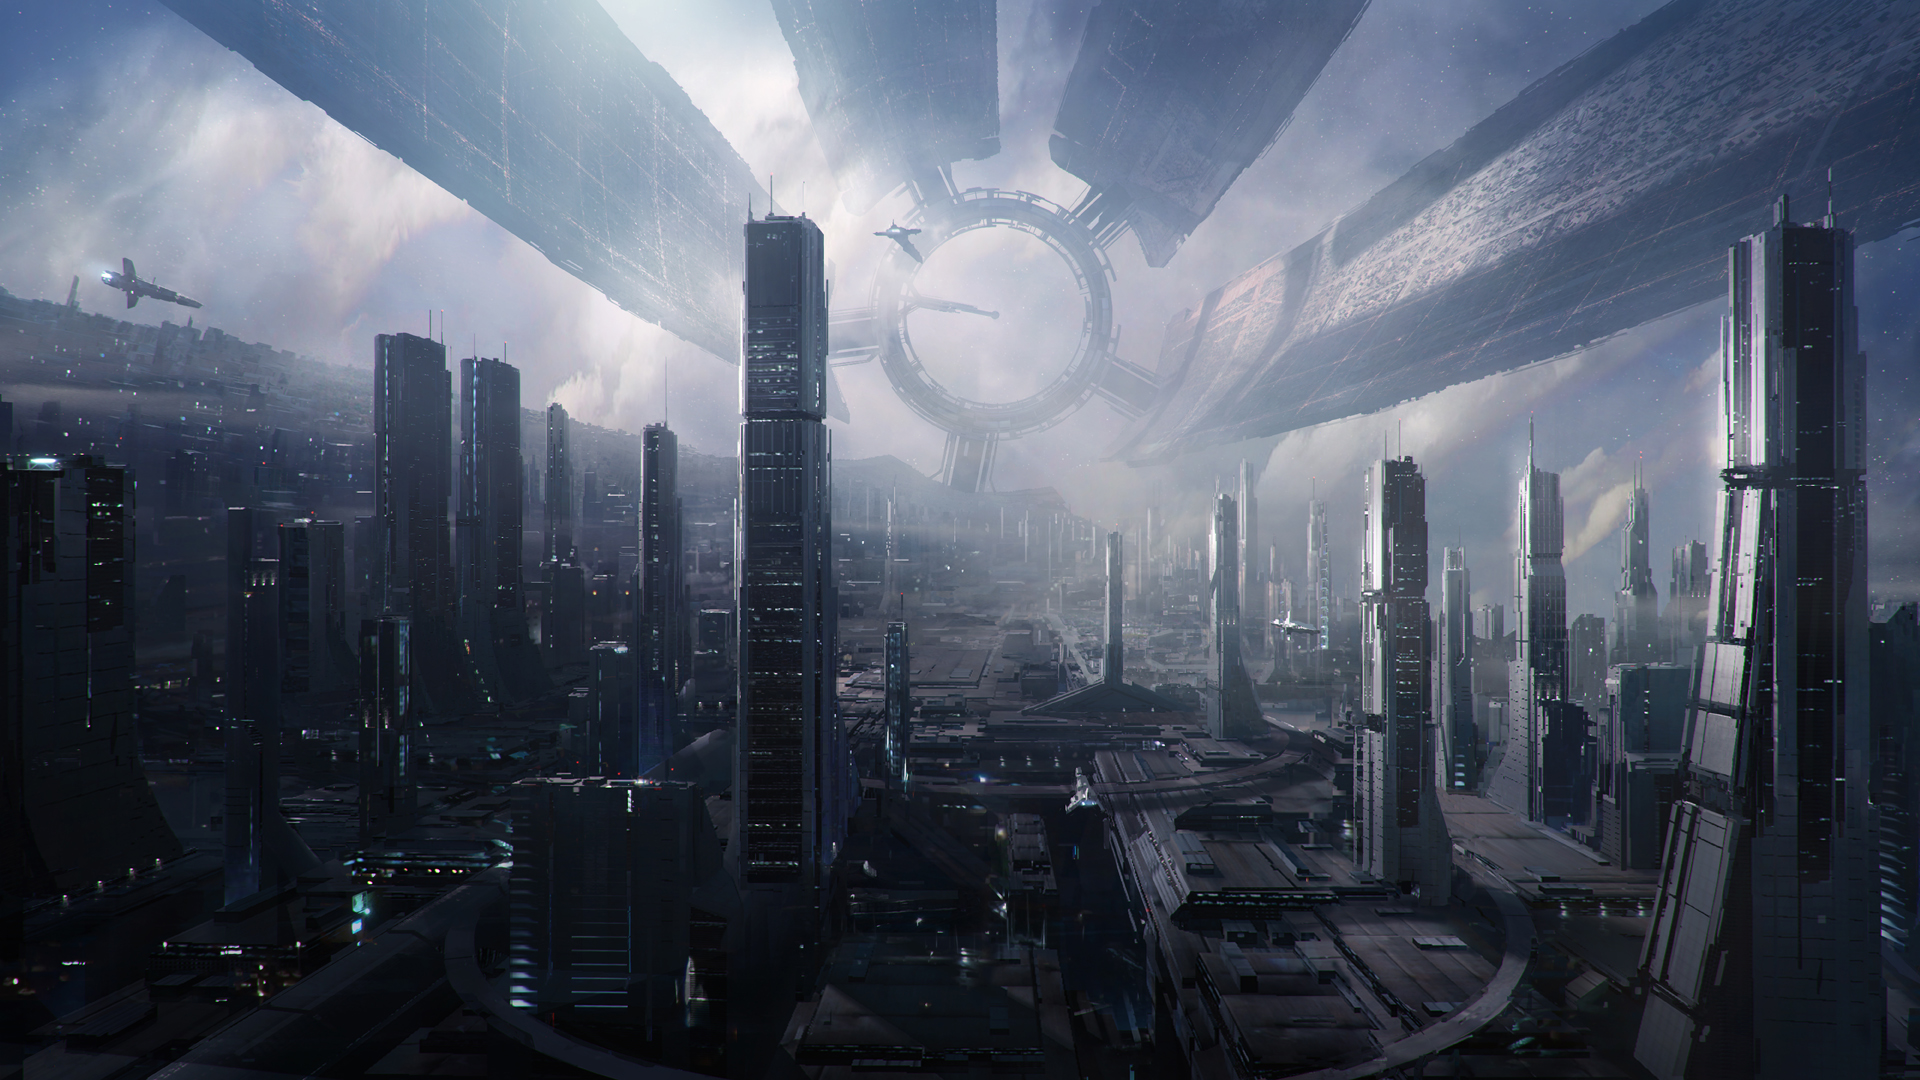 Mass Effect 2 Citadel by Artfall